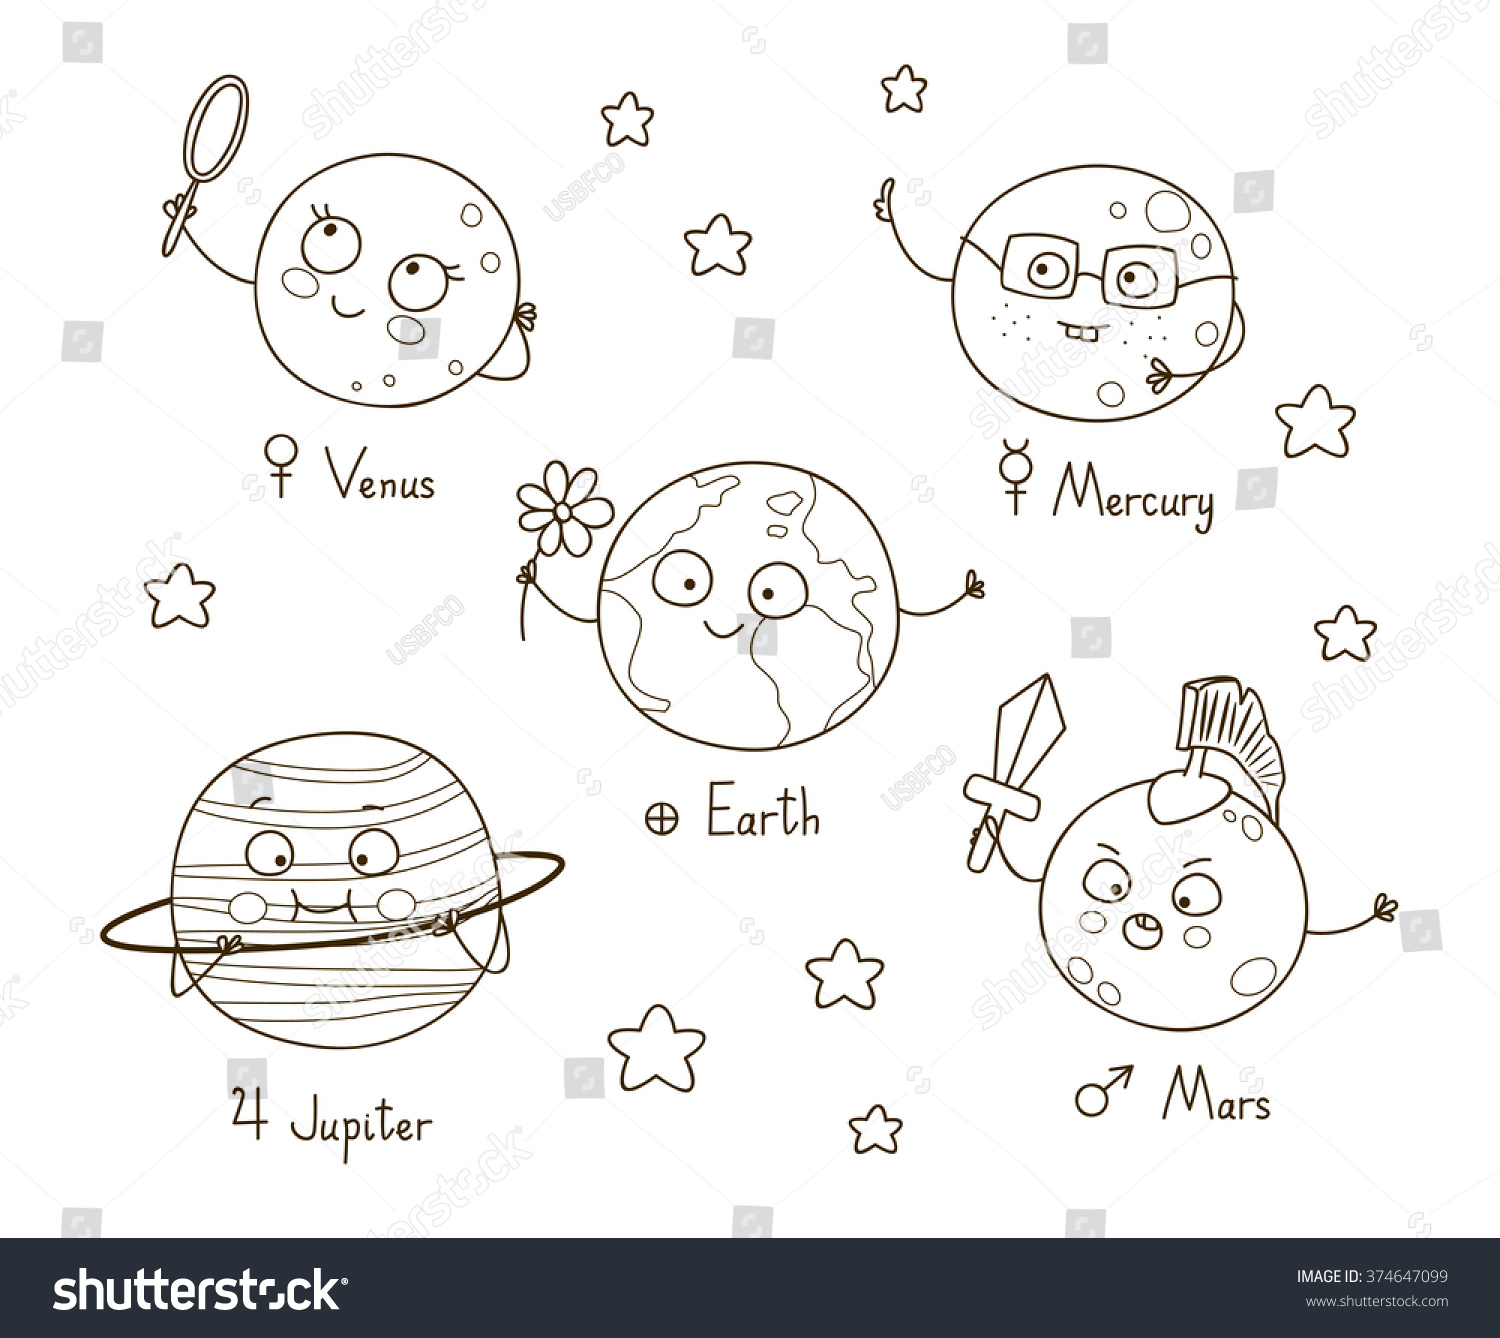 Cute Cartoon Planets Coloring Book Stock Vector 374647099 - Shutterstock